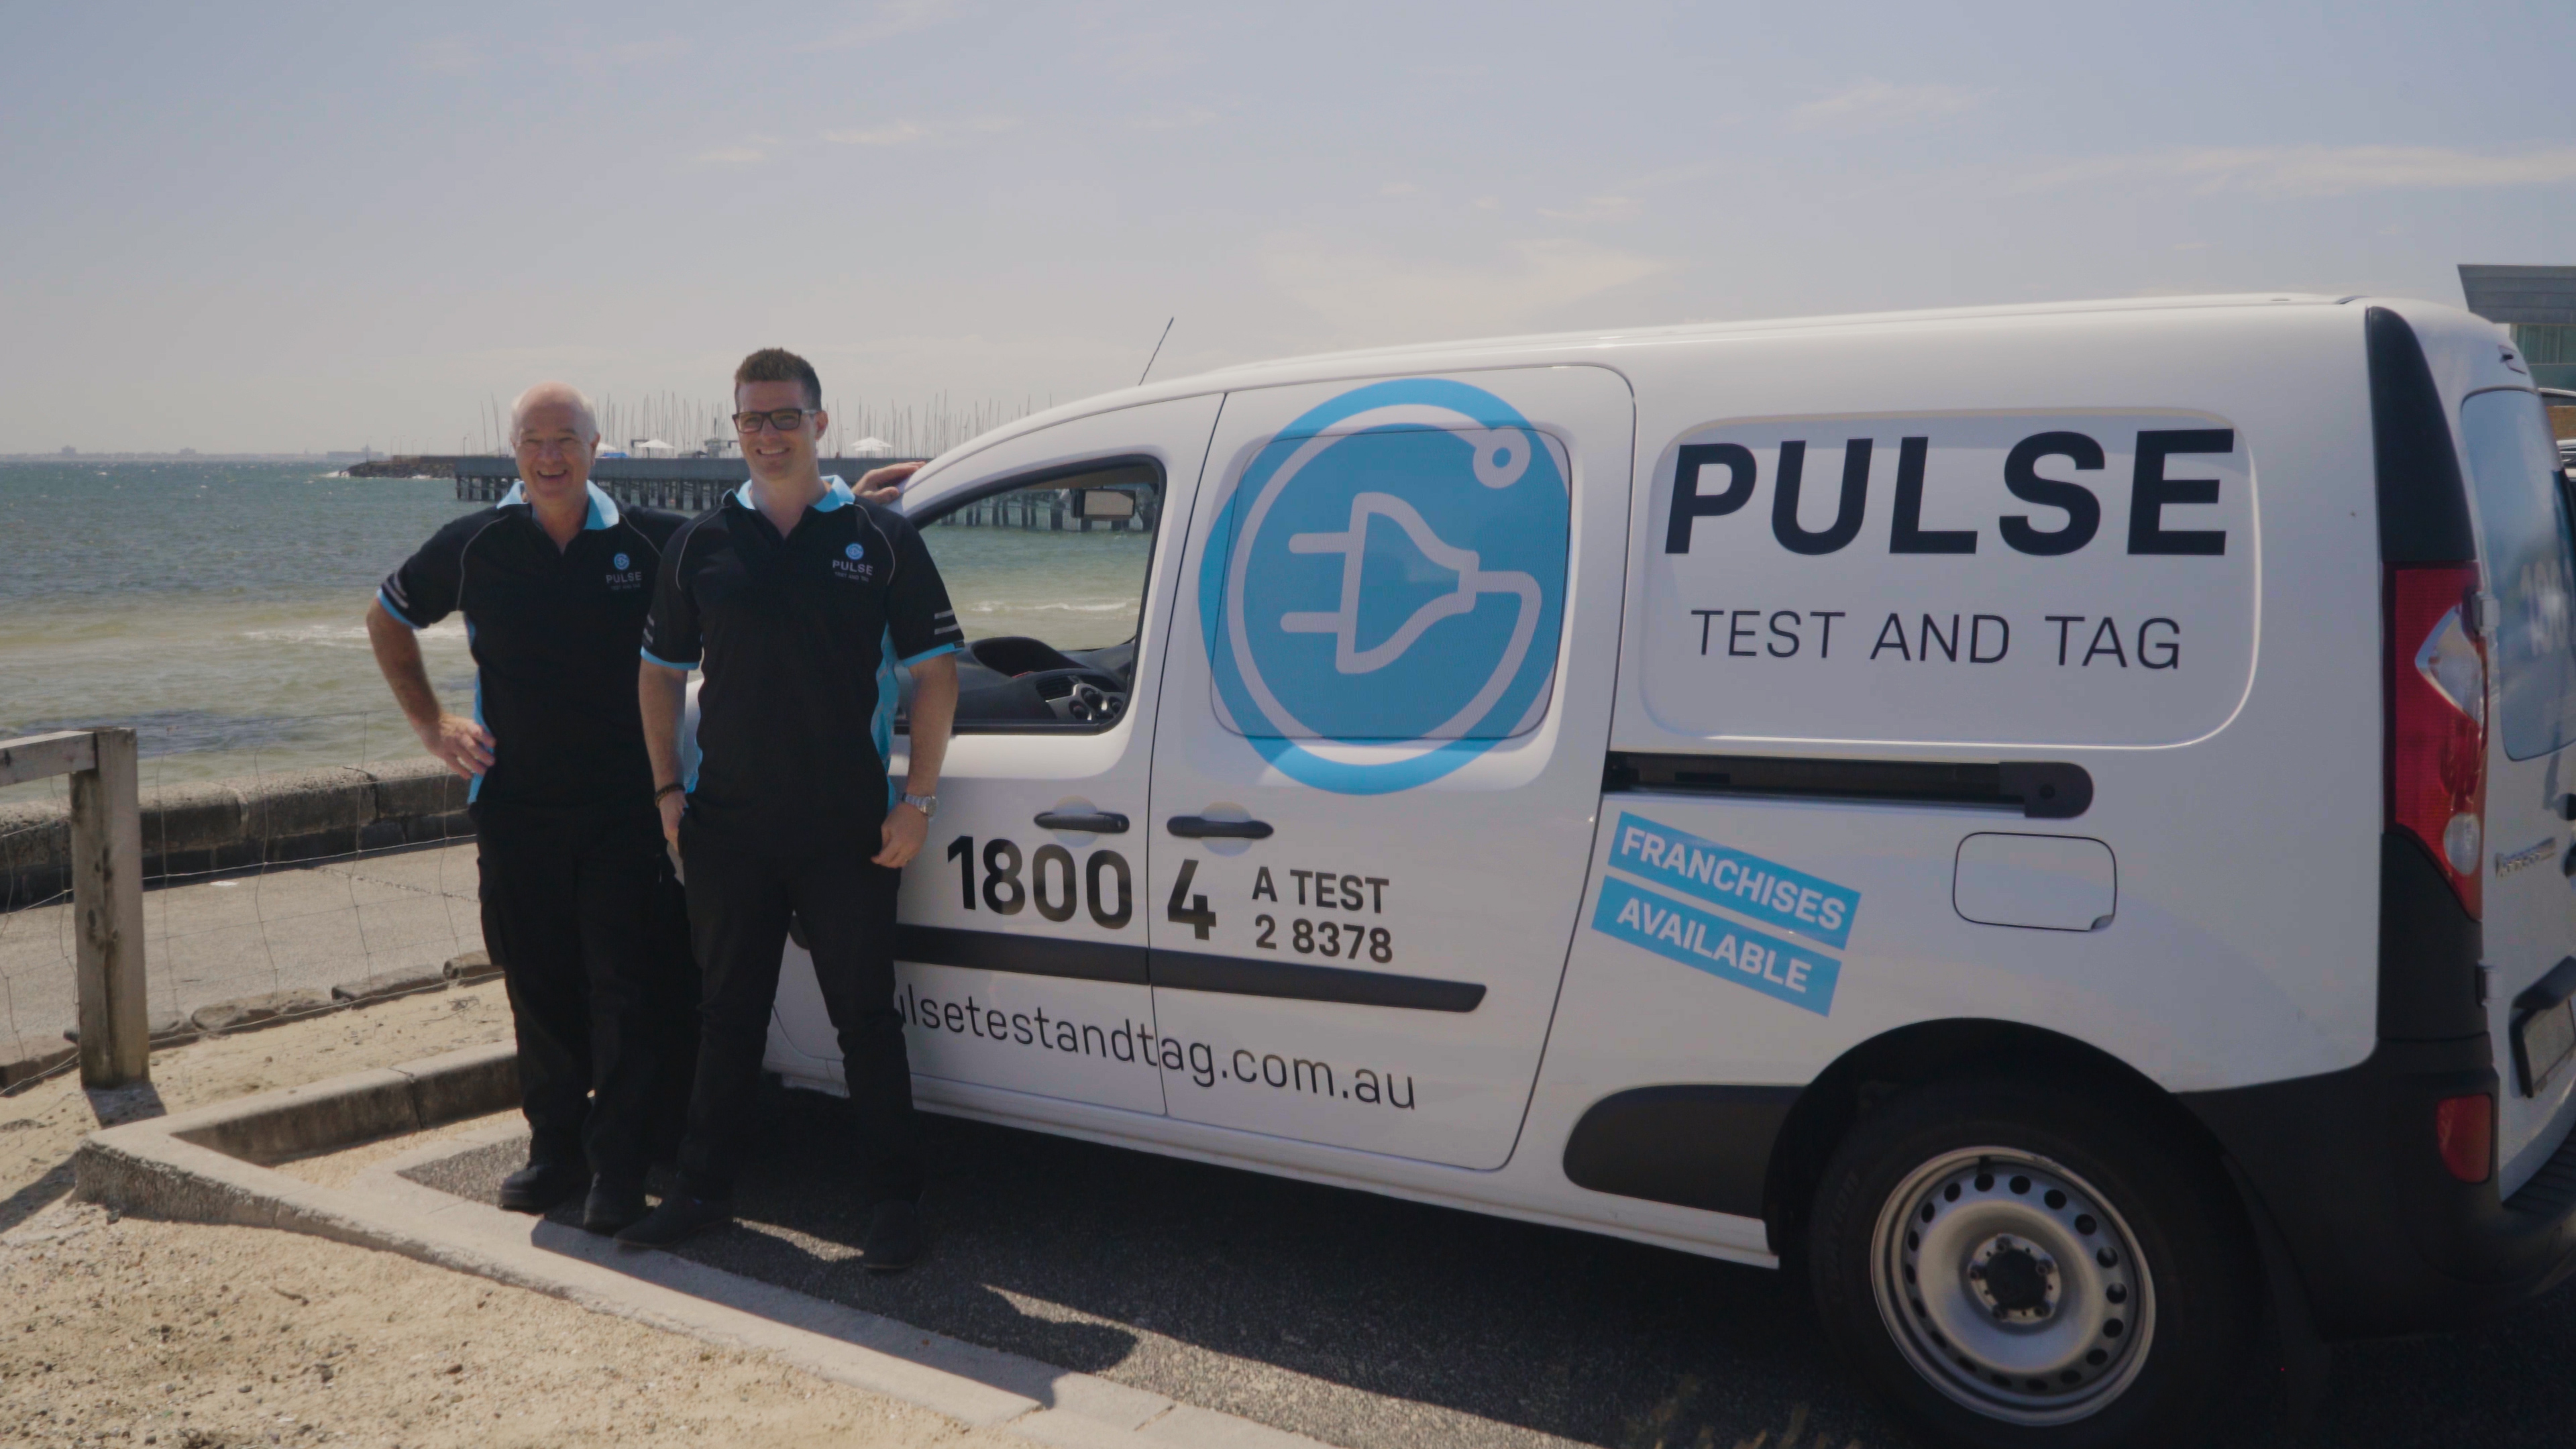 pulse-test-and-tag-franchises-available-electrical-test-and-tag-service-1